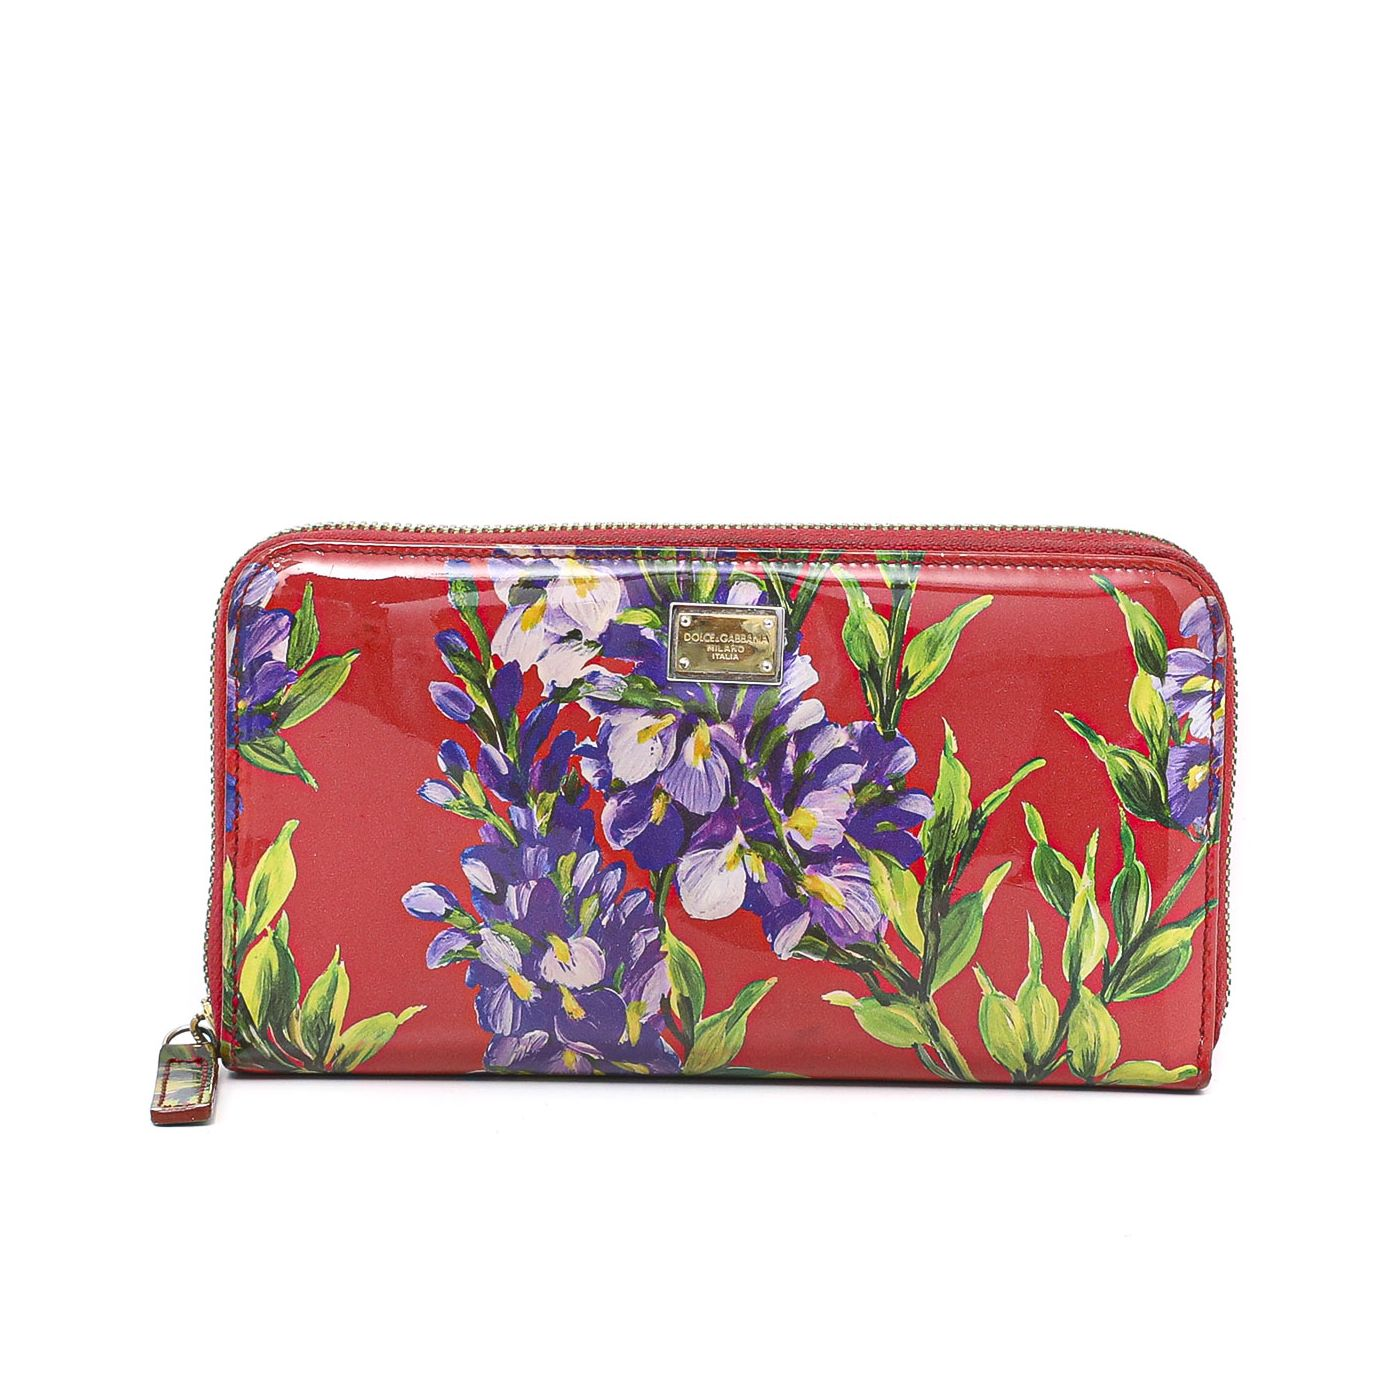 Dolce and Gabbana Red Patent Floral Print Zippy Long Wallet